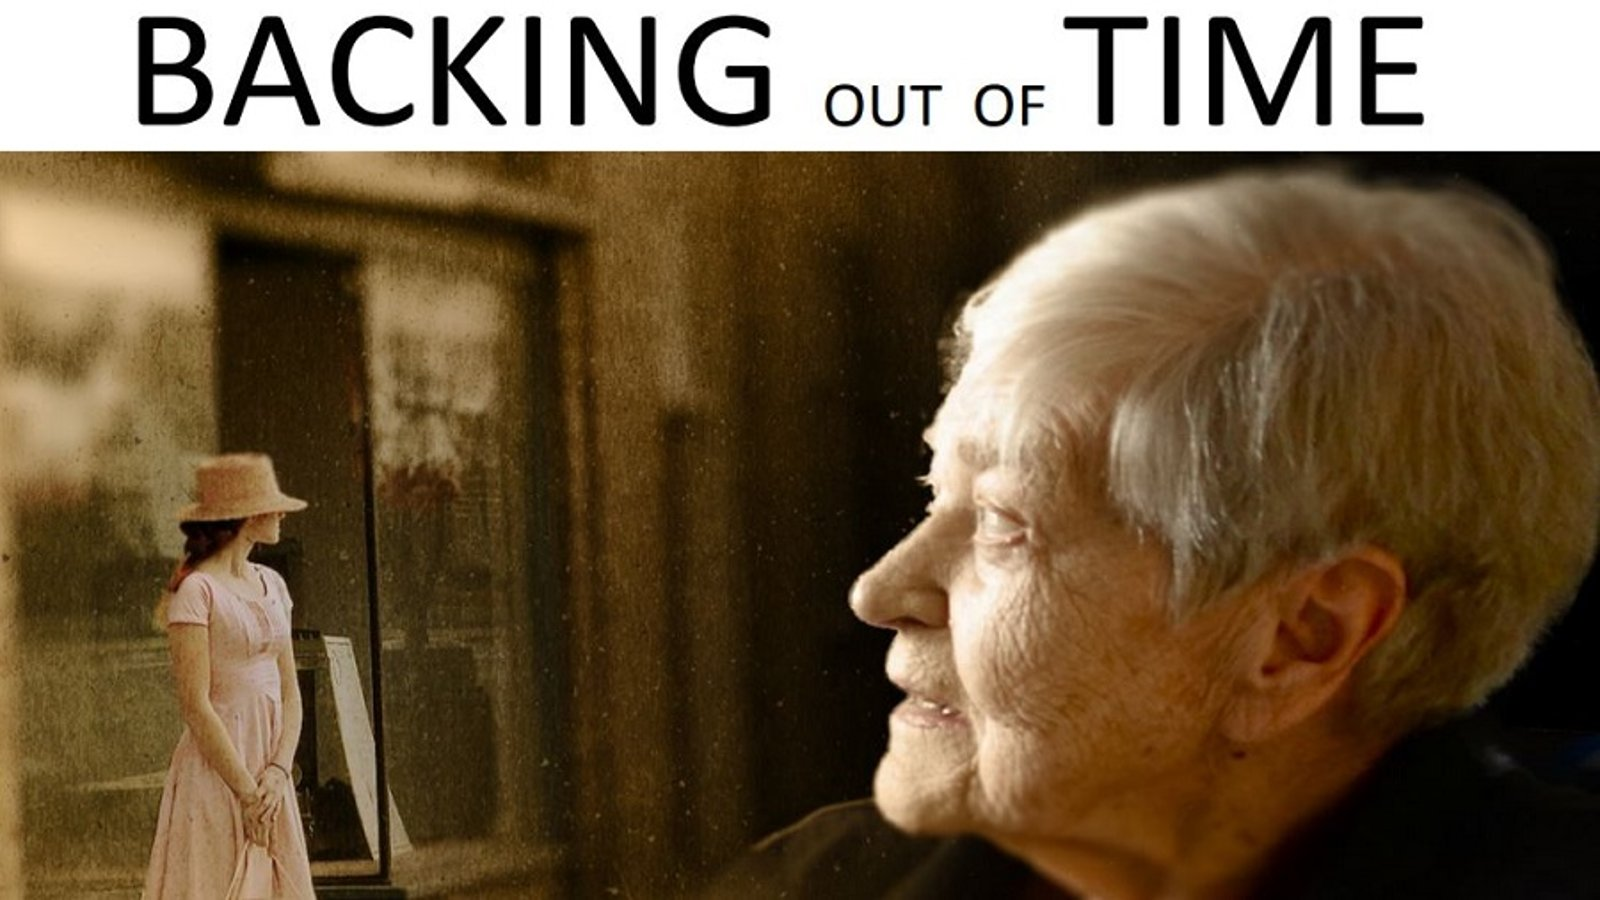 Backing Out of Time - Caring for Parents with Alzheimer's